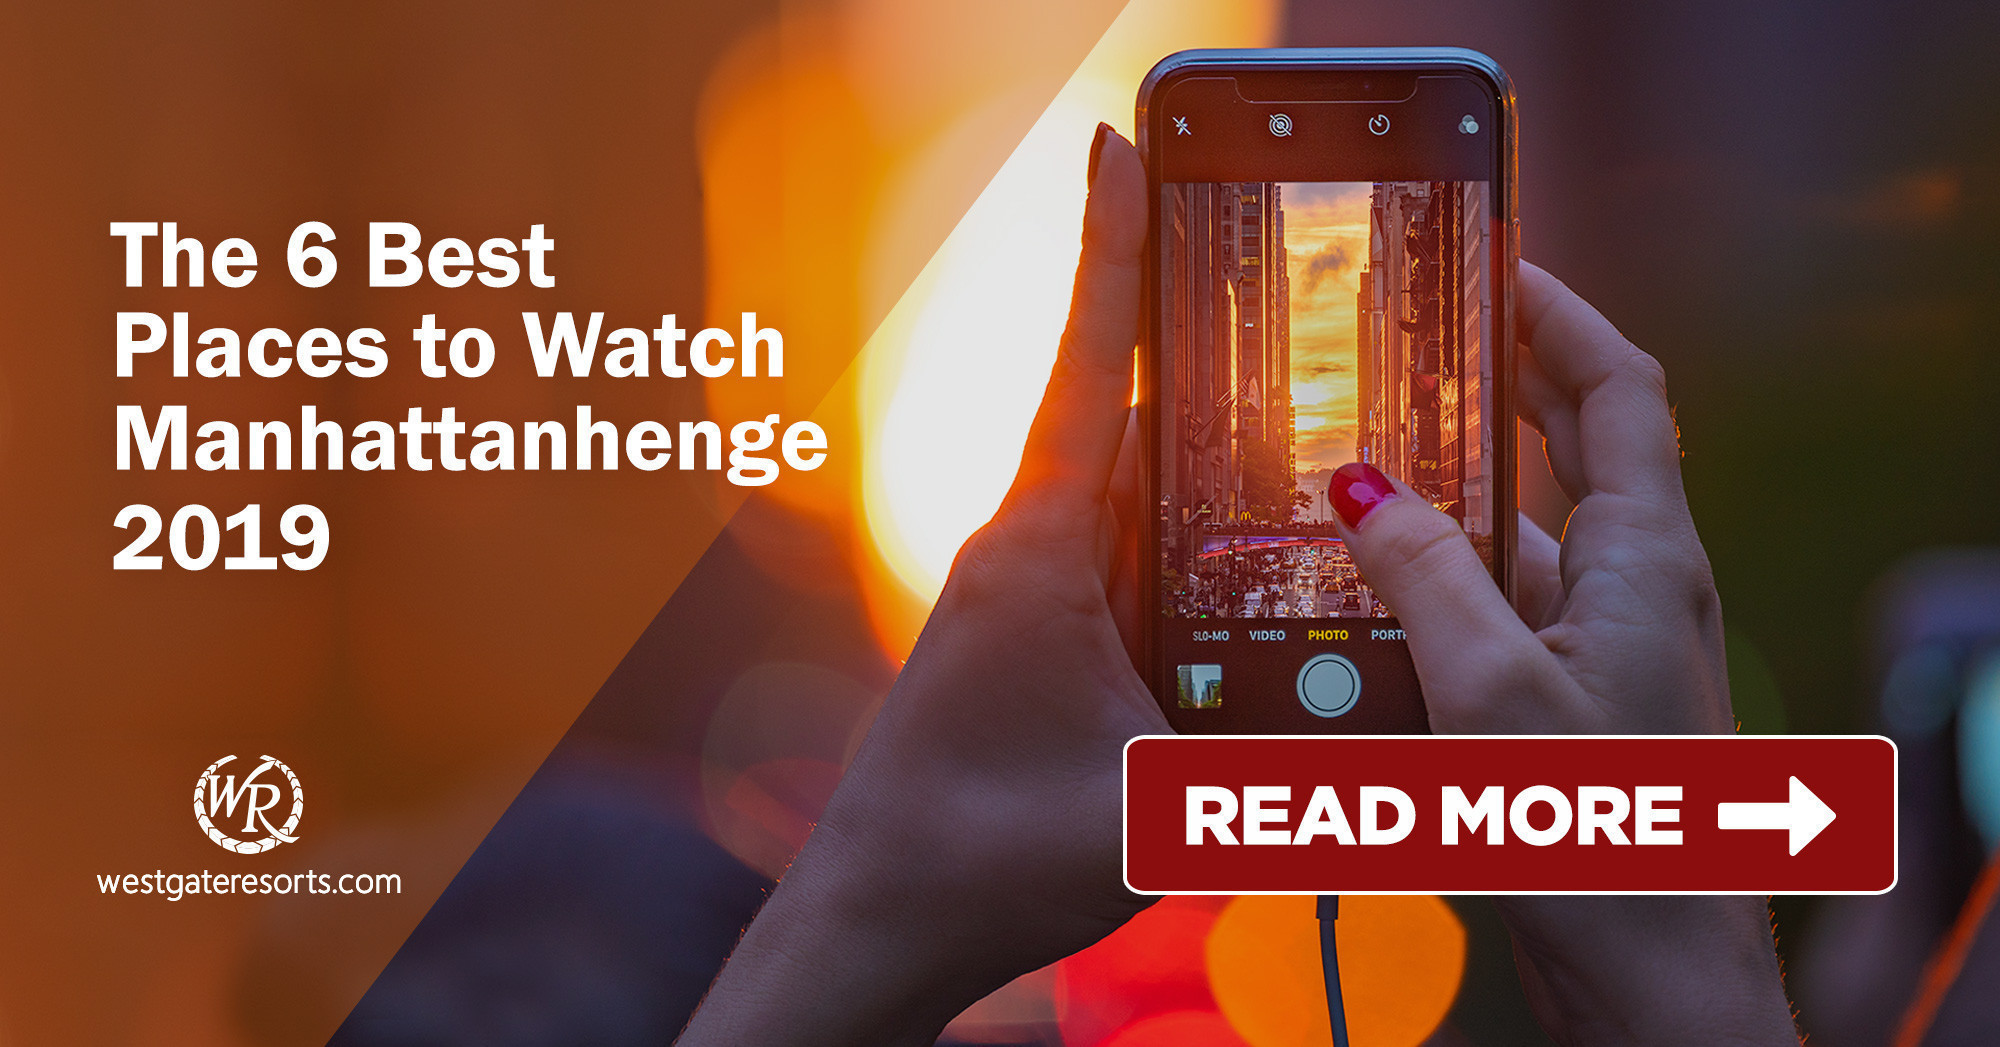 The 6 Best Places to Watch Manhattanhenge 2019 for Photos of Manhattanhenge and Best Views in NYC!